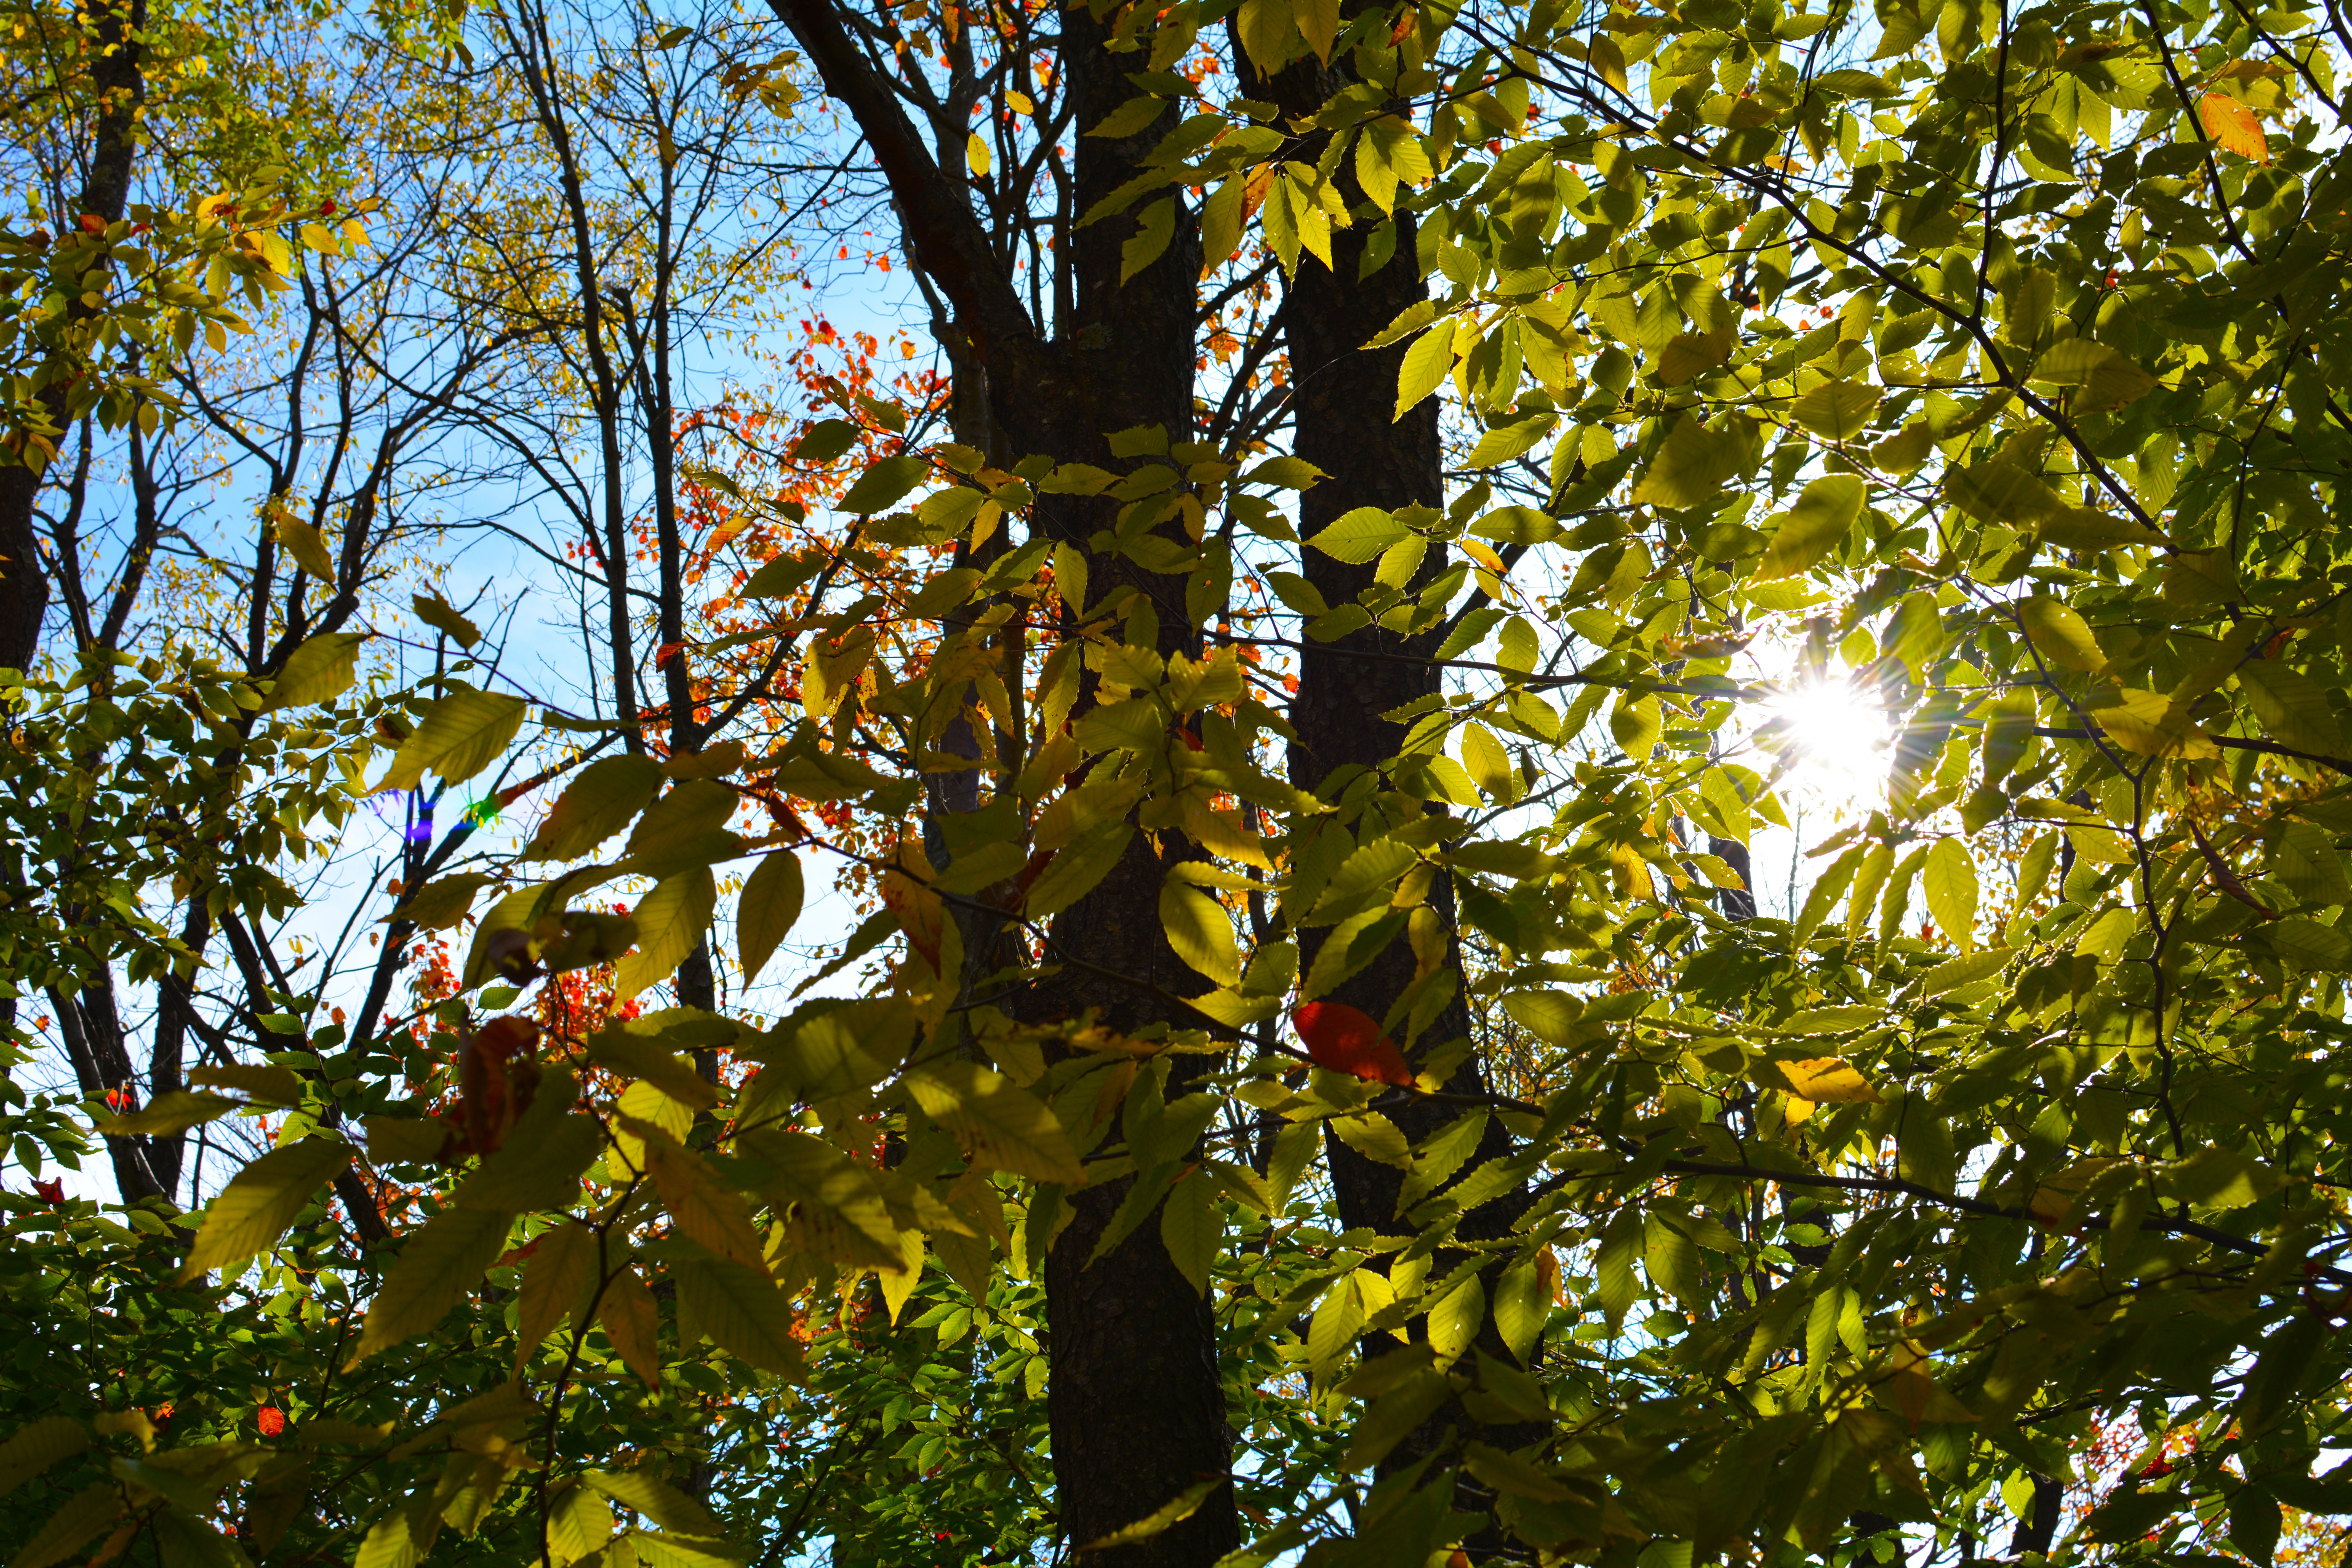 The morning sun shines through the trees at Tobyhanna State Park